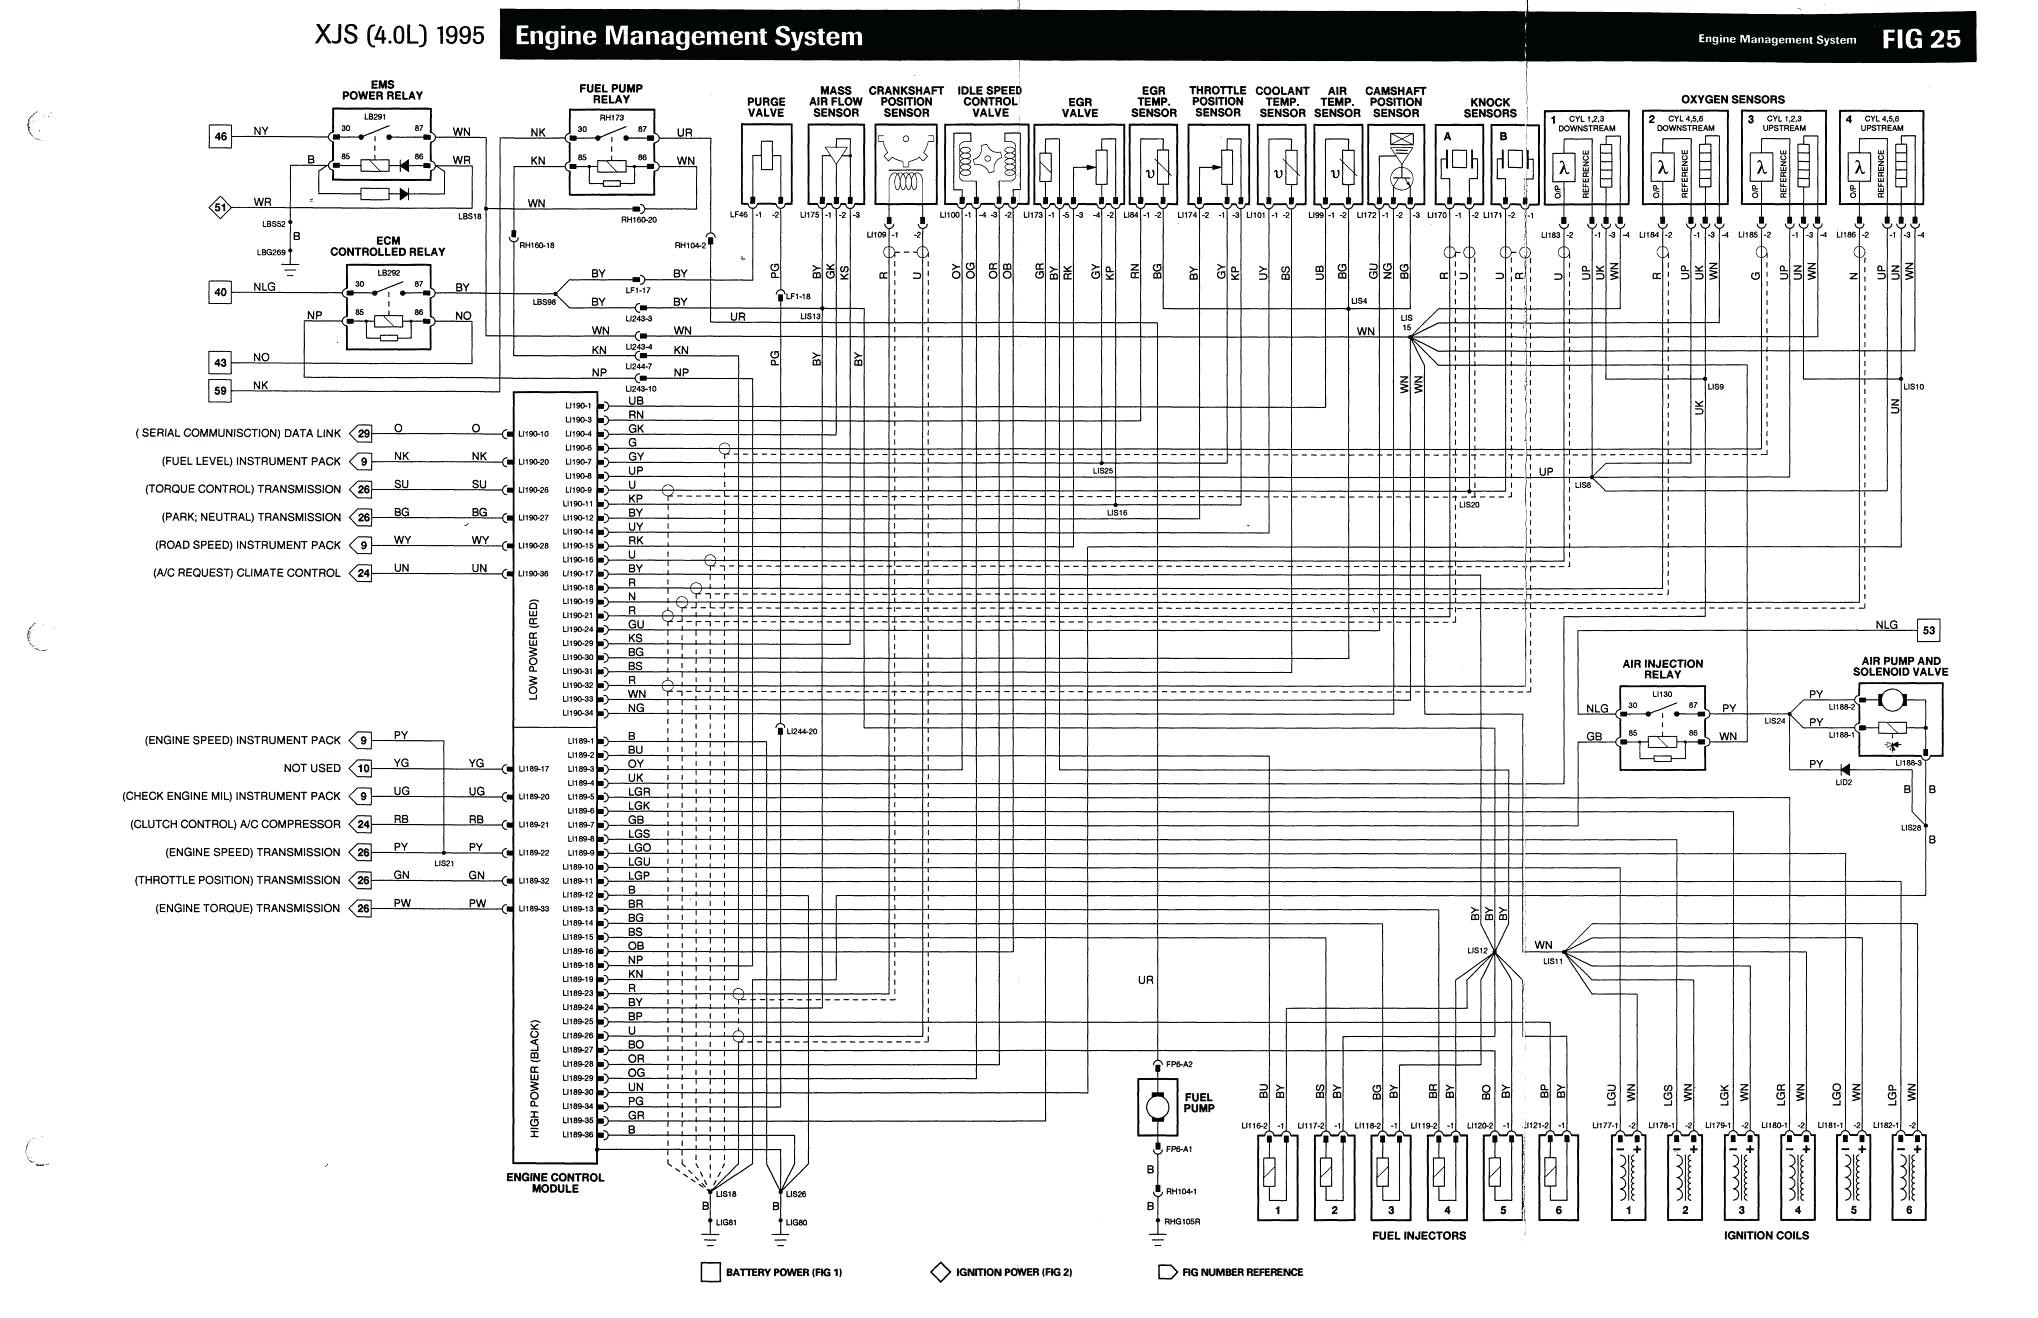 2003 Jaguar X Type Engine Diagram Extra for Jaguar Engine From Xf Diagram Curves Wiring Intake Of 2003 Jaguar X Type Engine Diagram